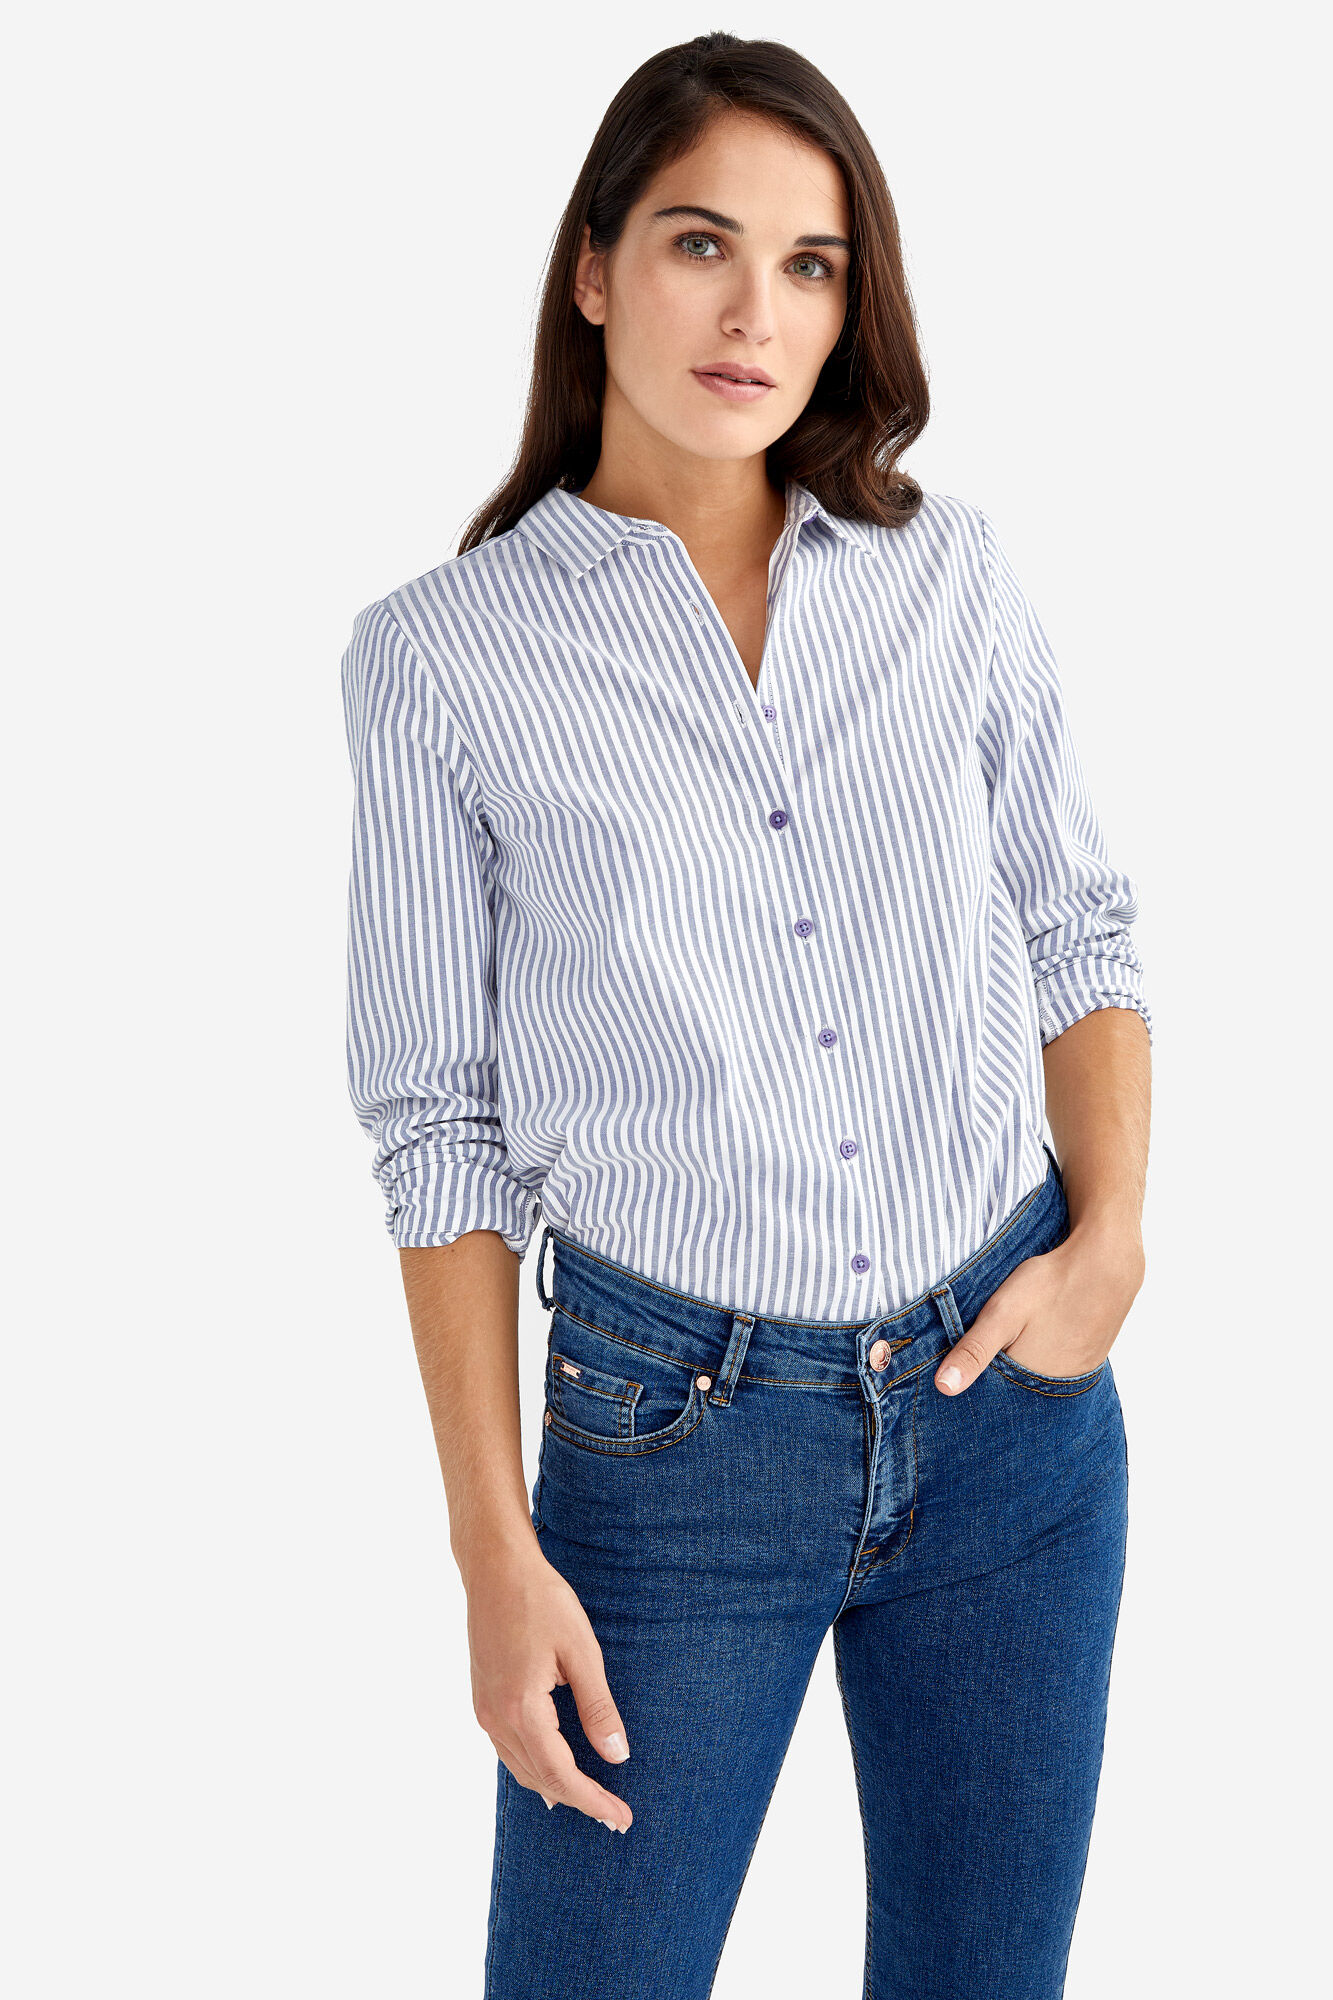 Y Camisa Camisas Blusas Rayas Fifty pxEA0xq